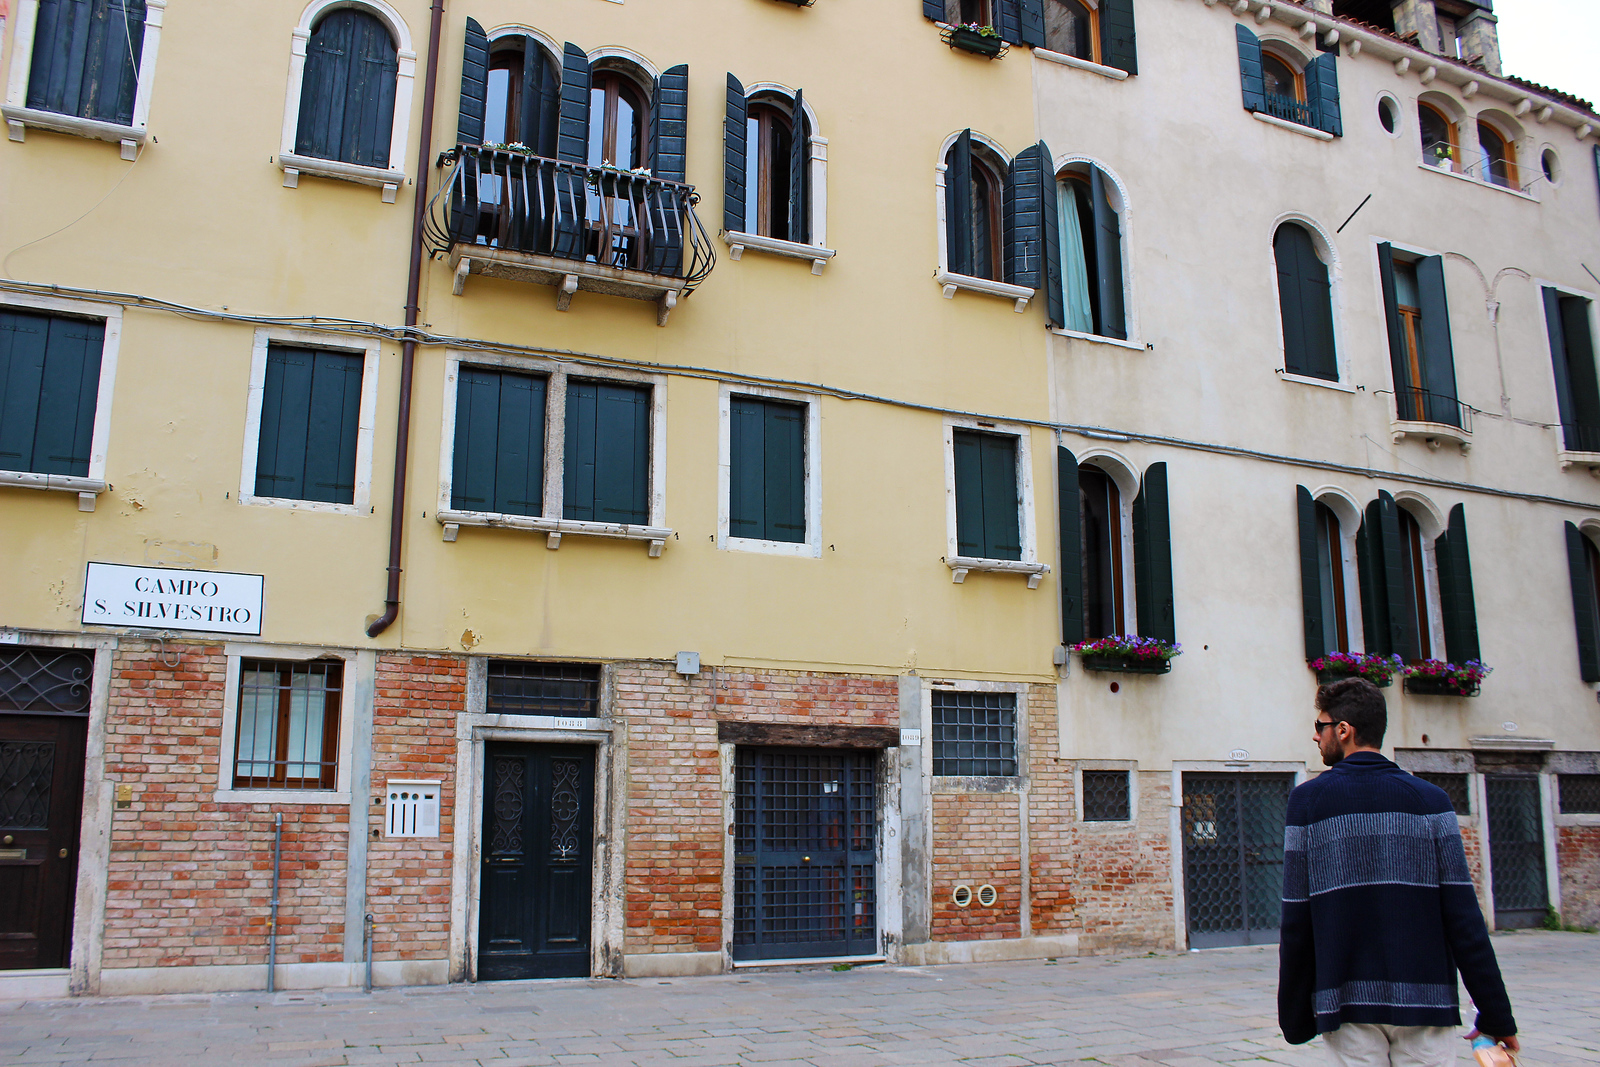 Getting Lost: Exploring Venice on Foot